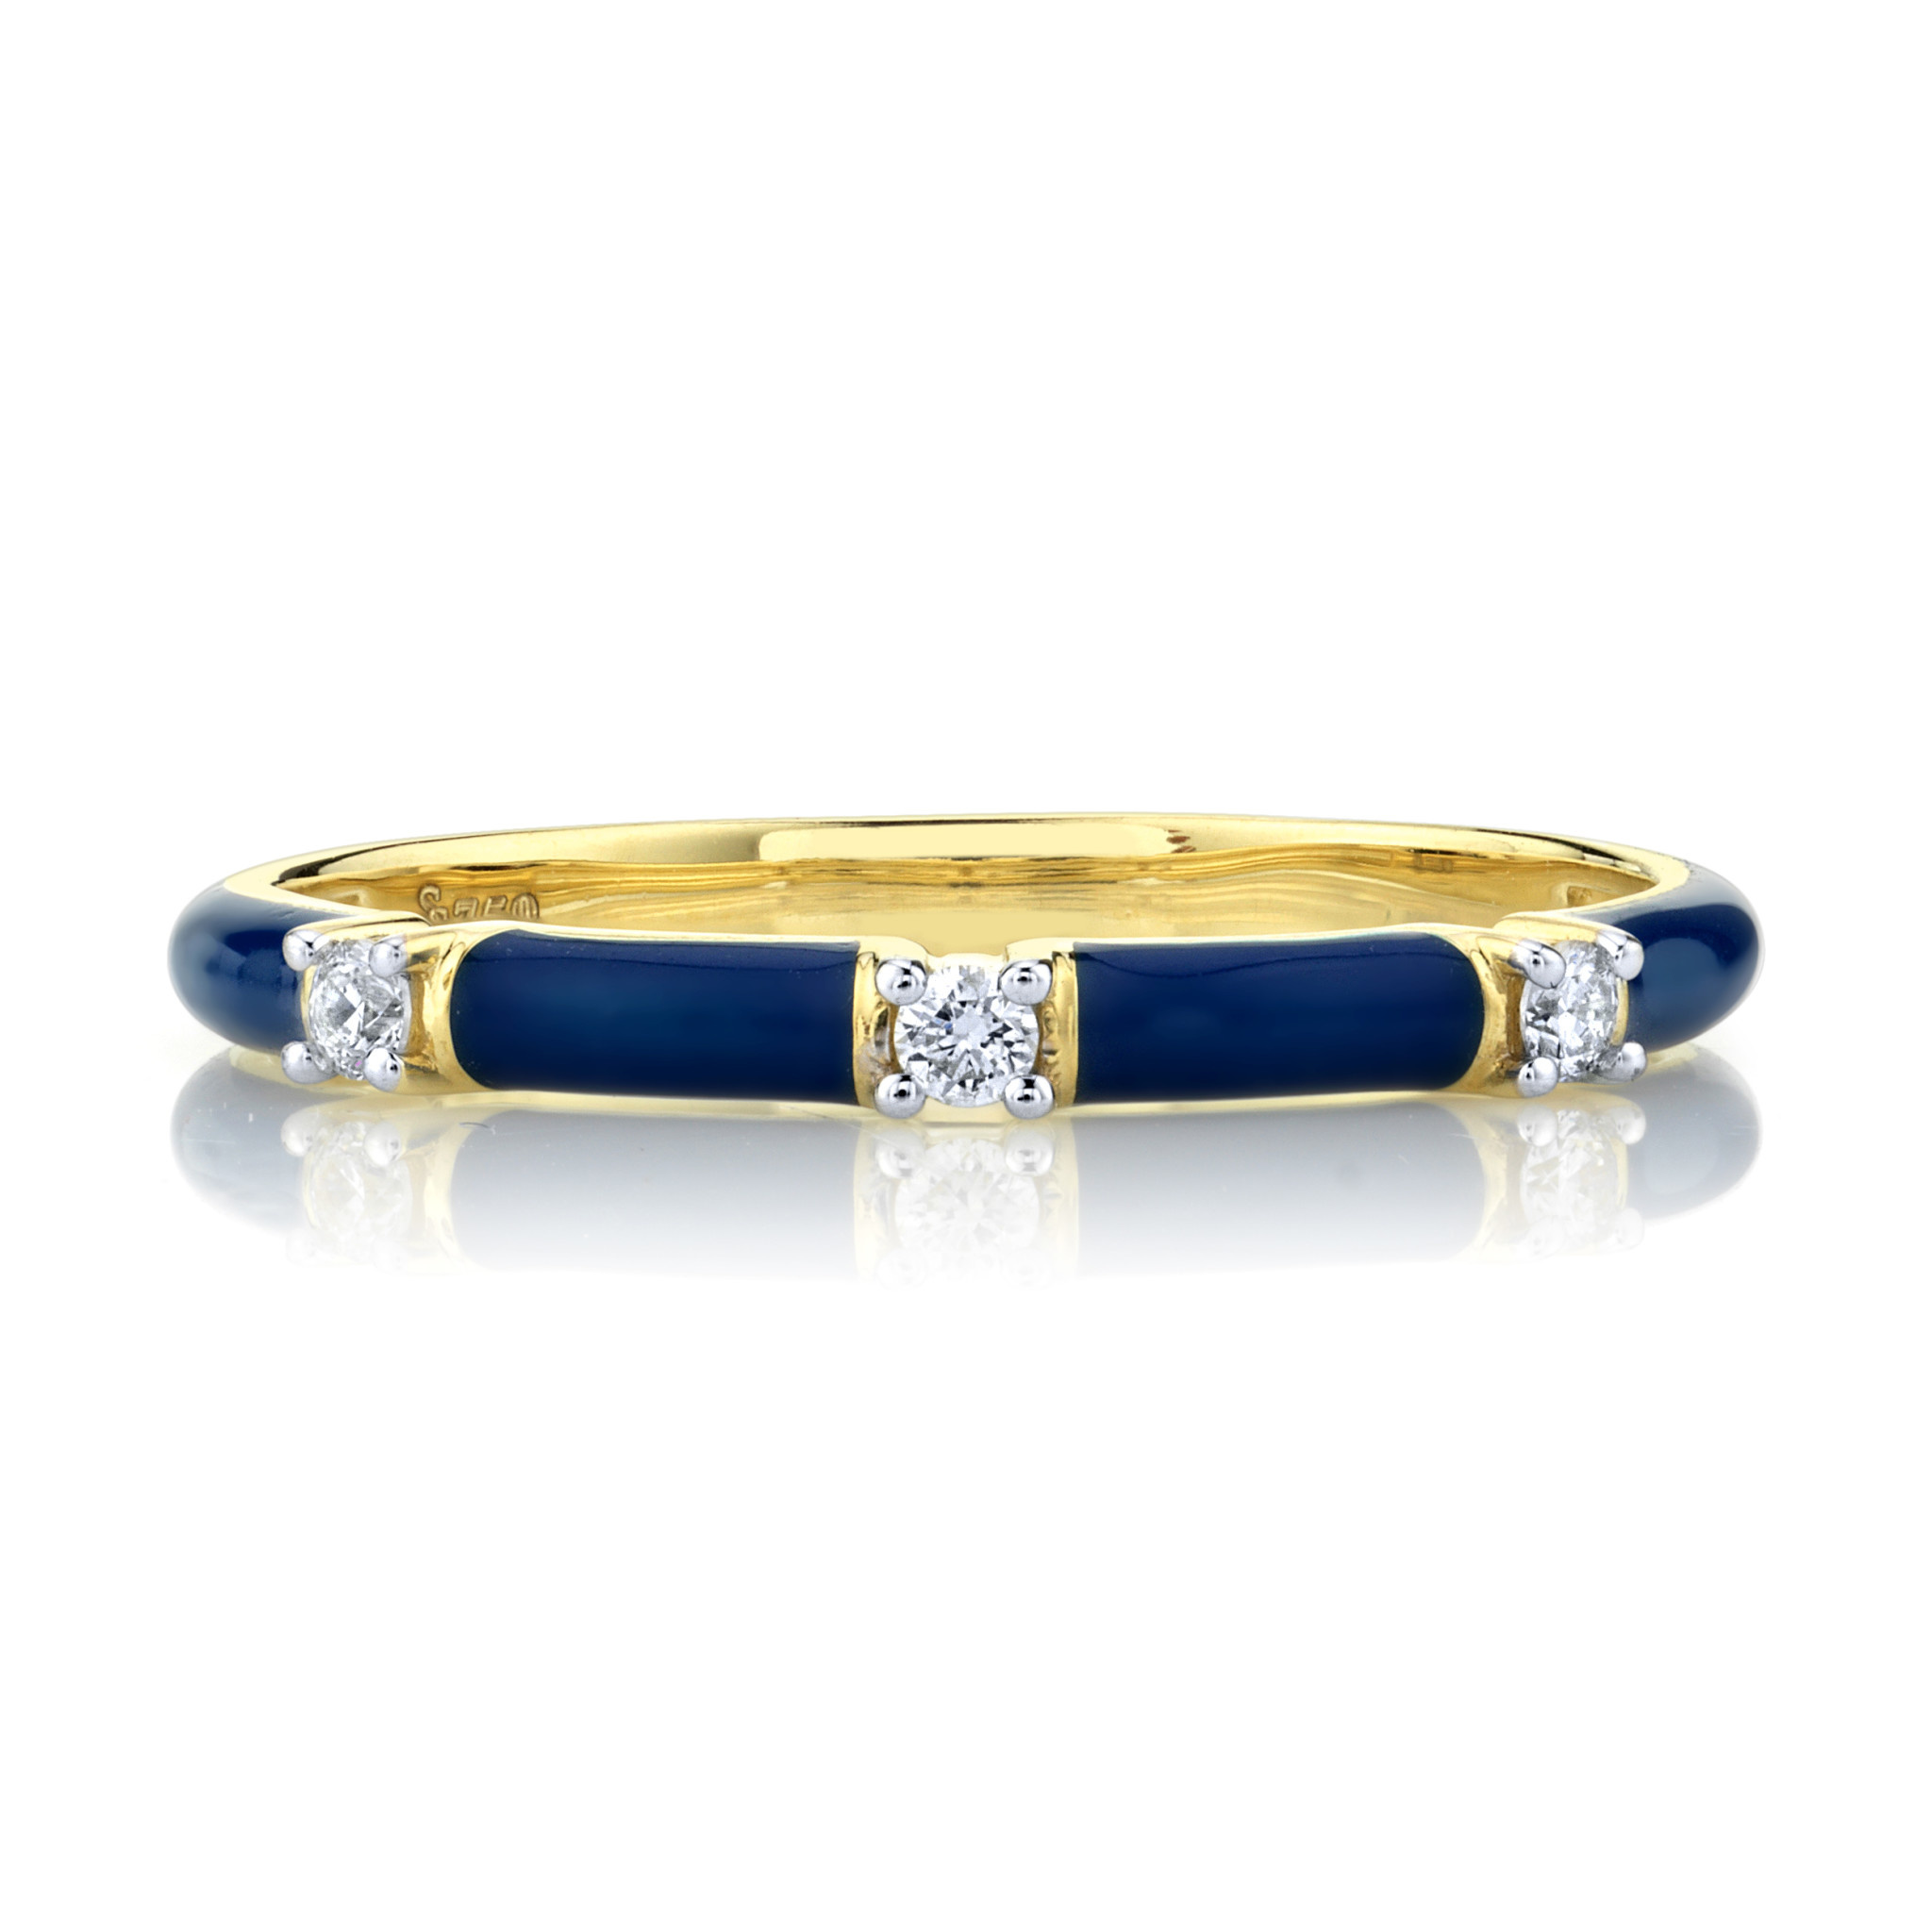 Blue Enamel Stackers Ring with White Diamond Details